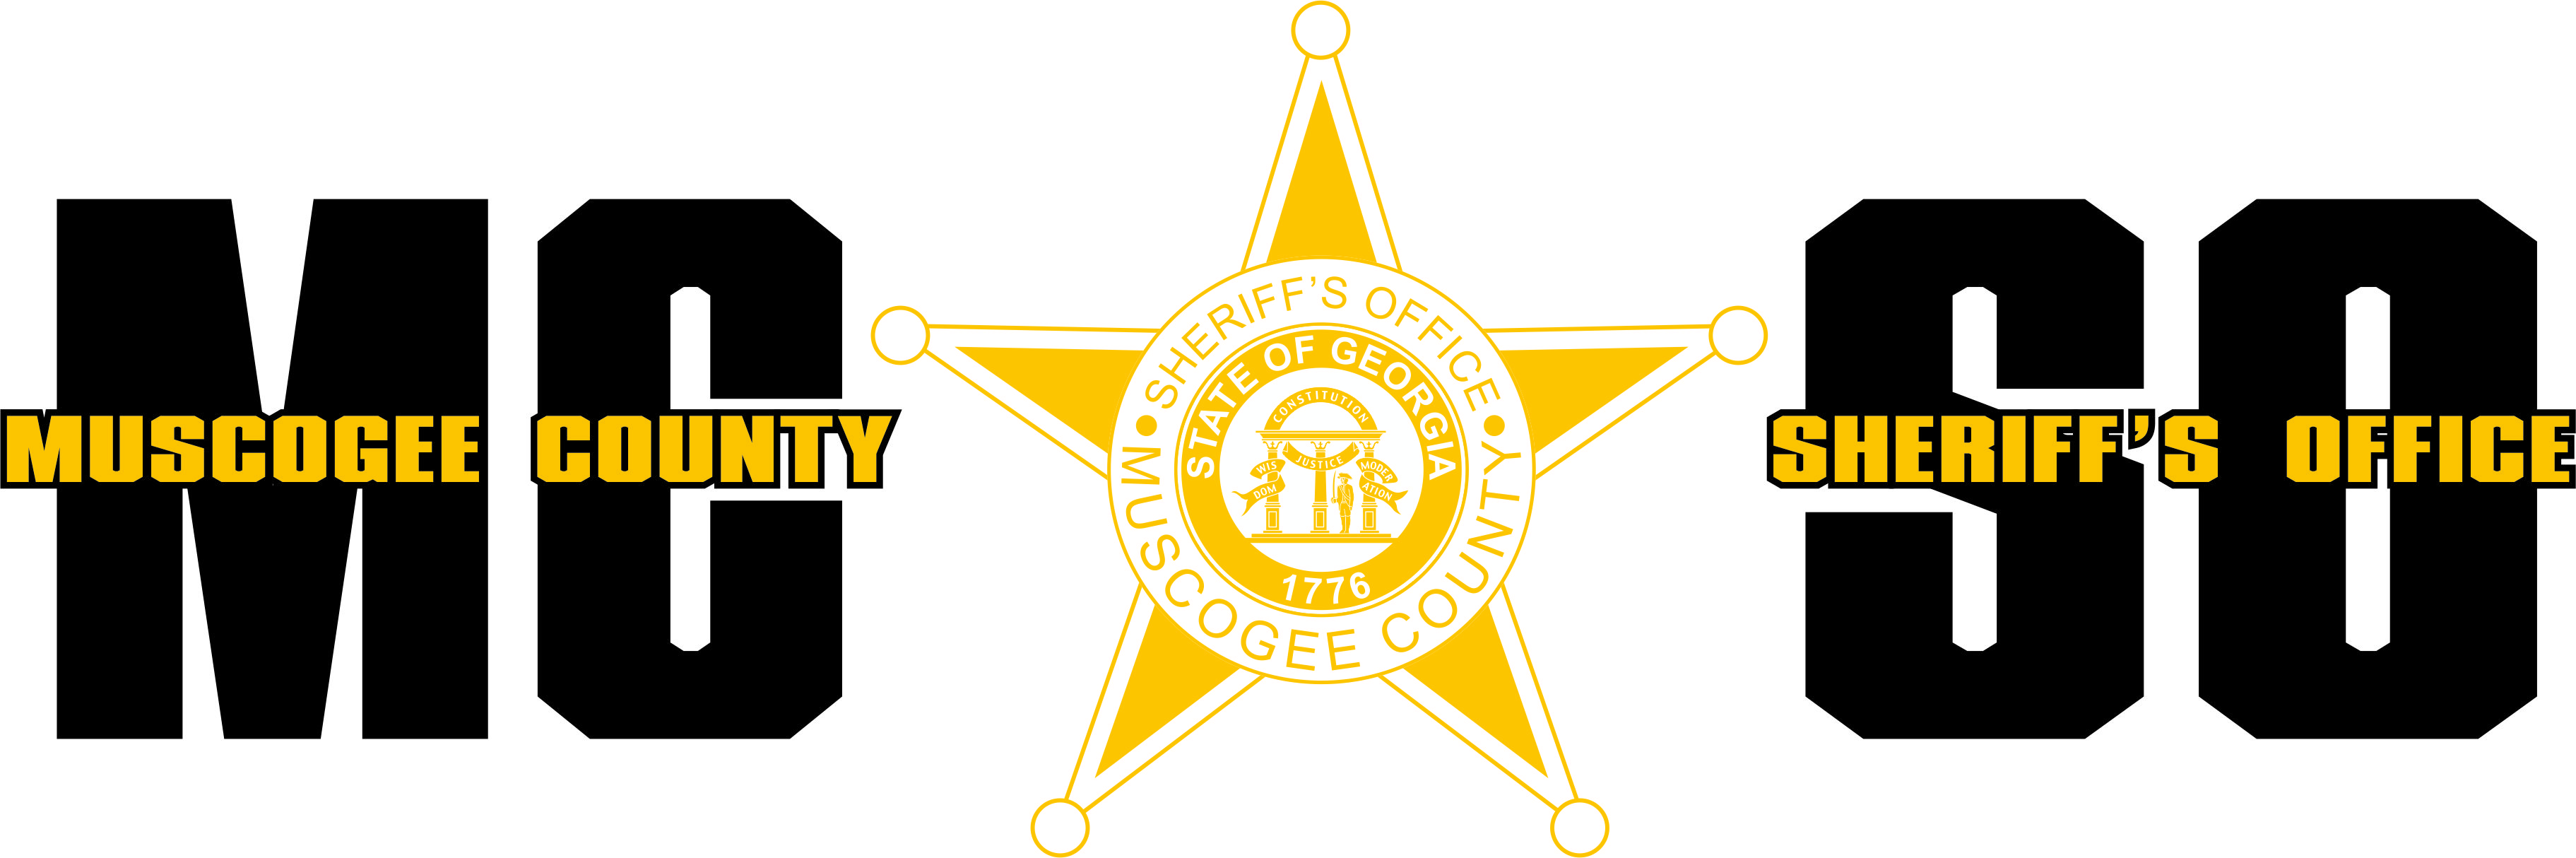 Muscogee County Sheriff's Office, GA Public Safety Jobs